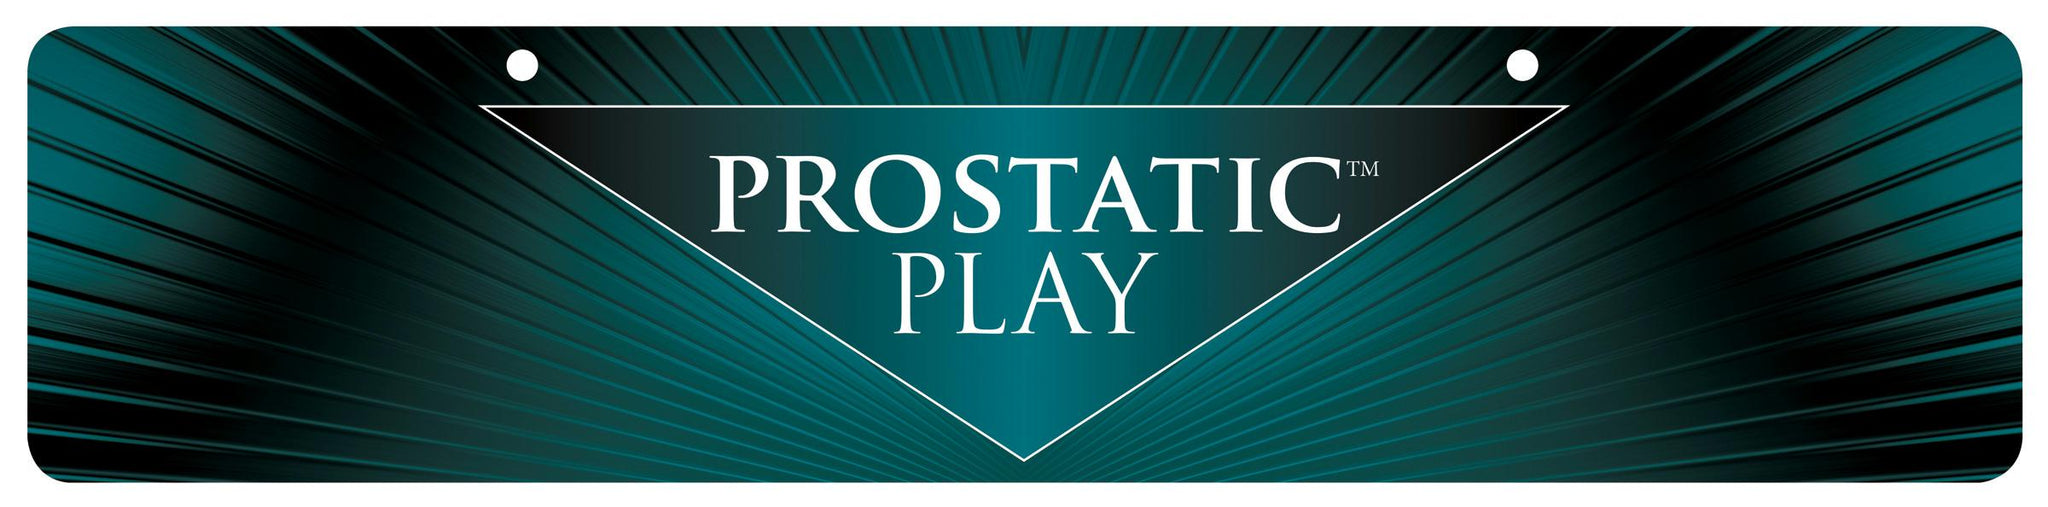 Prostatic Play Display Sign